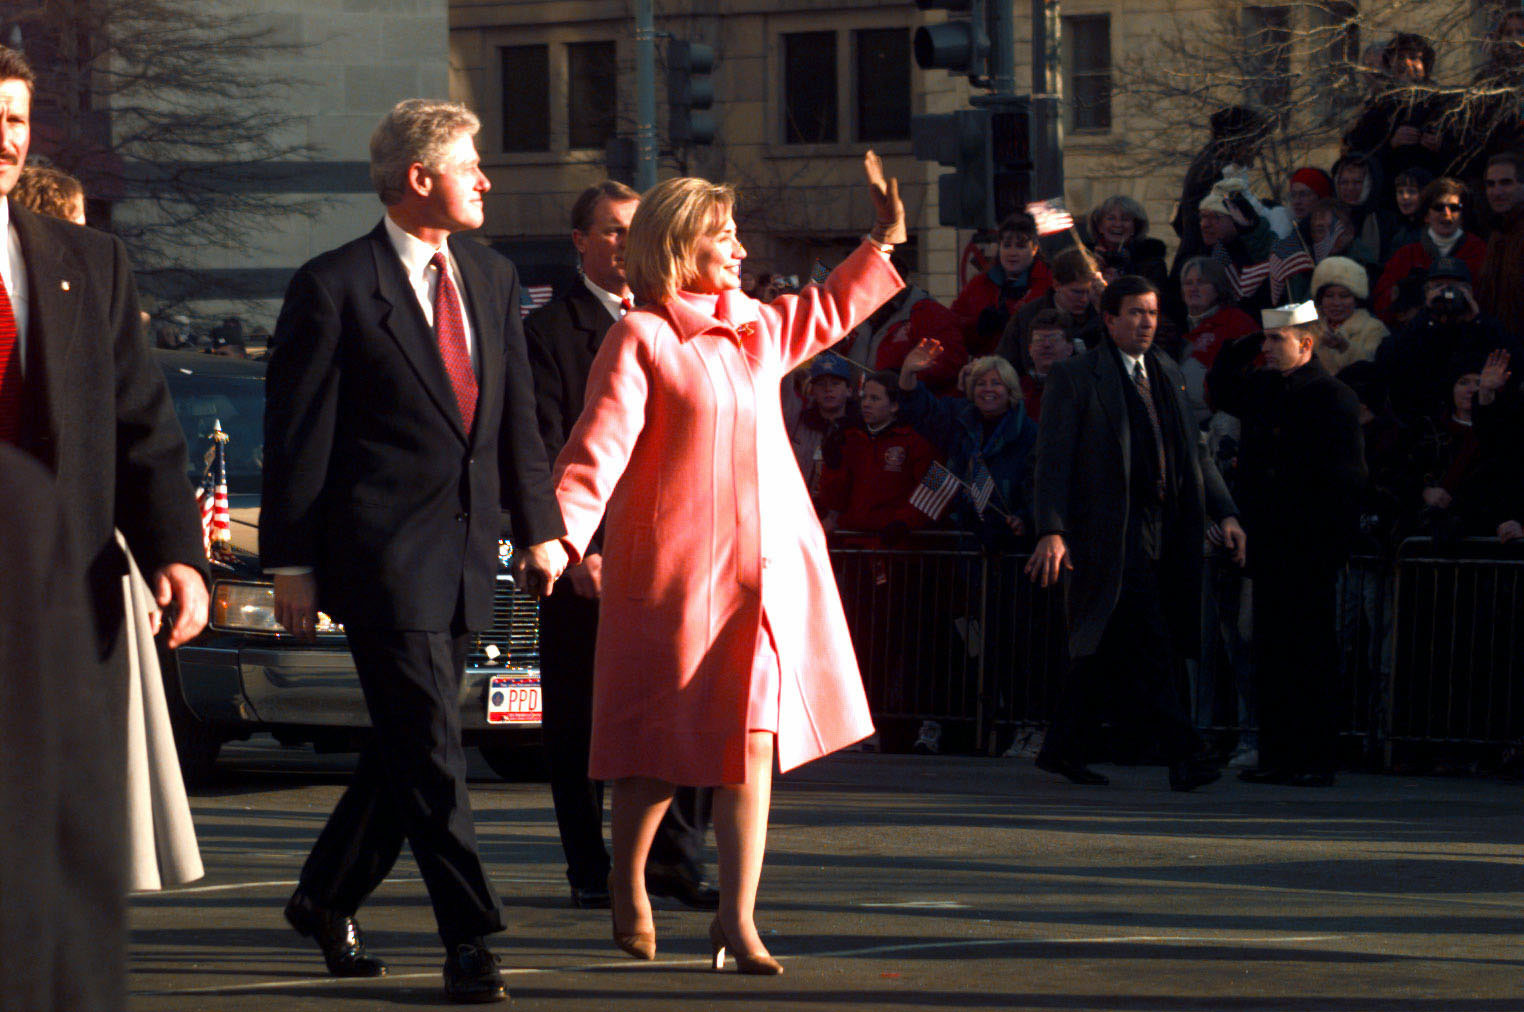 Bill and Hillary Clinton at 1997 inaugural parade 1.JPG